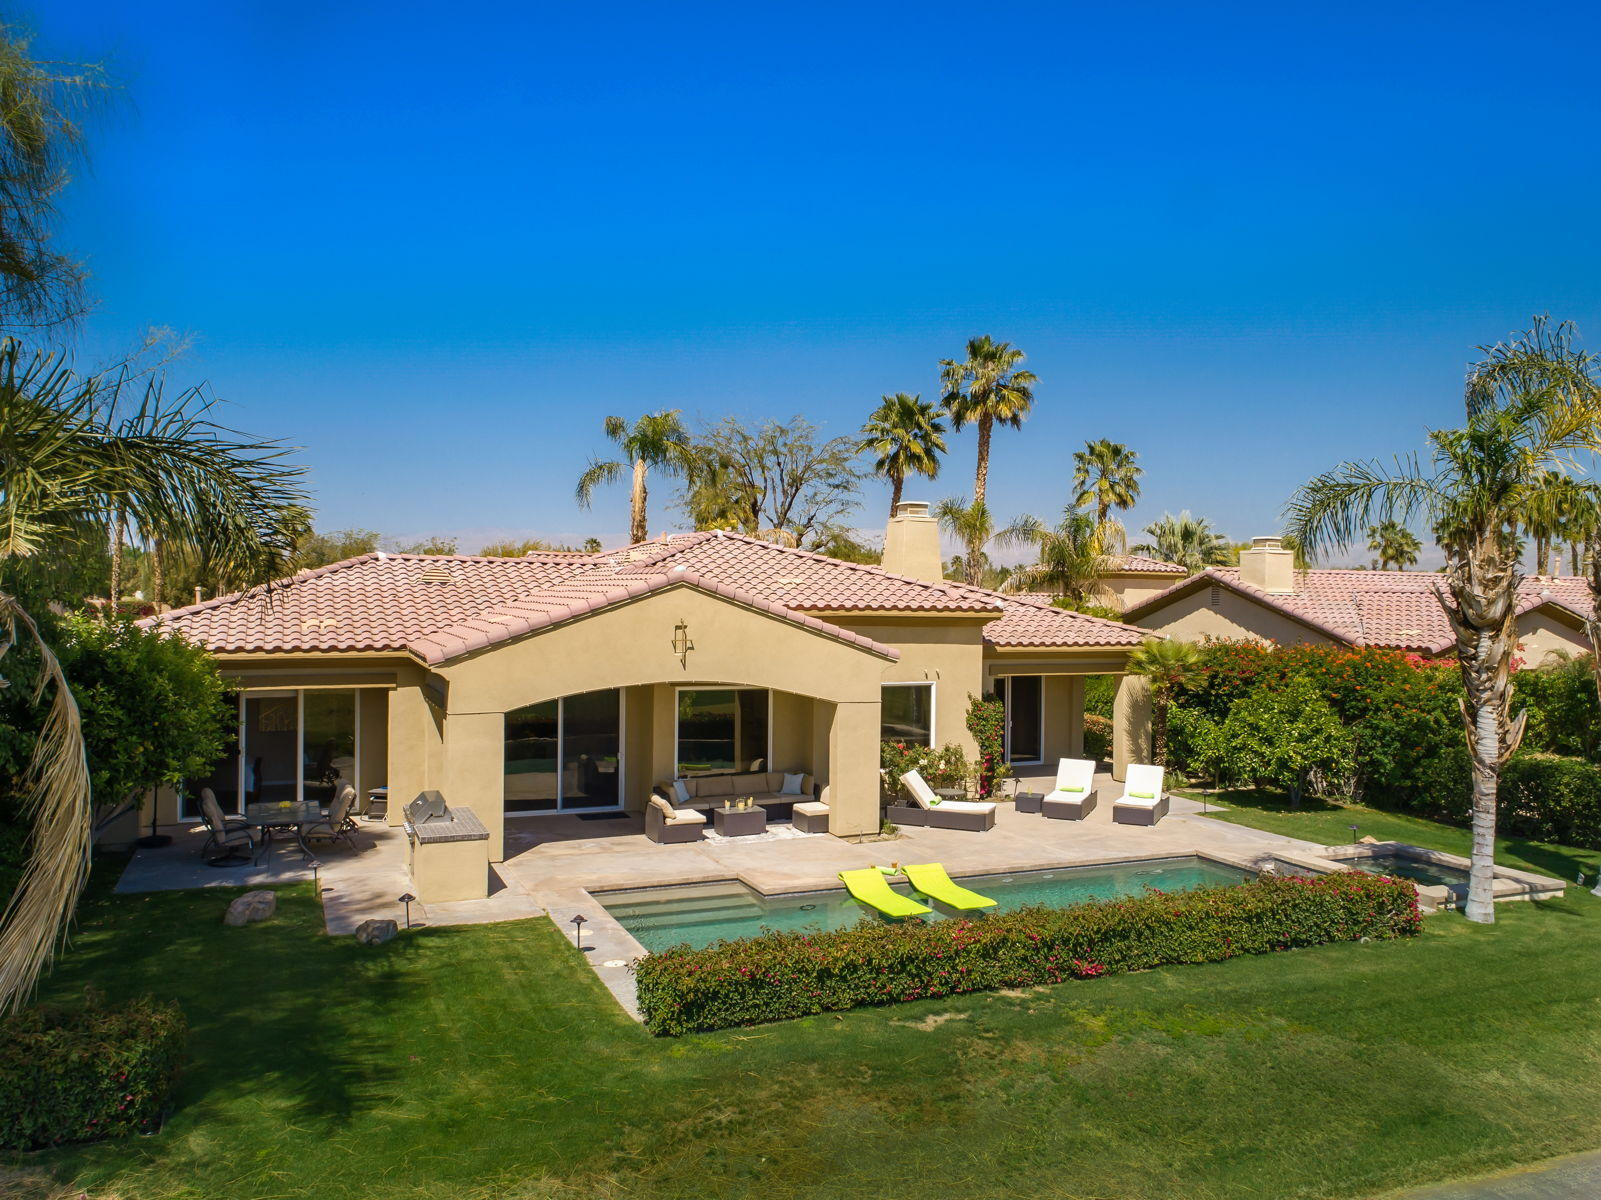 81115 Muirfield Village Drive, La Quinta, California 92253, 4 Bedrooms Bedrooms, ,4 BathroomsBathrooms,Residential,For Sale,81115 Muirfield Village Drive,219041582